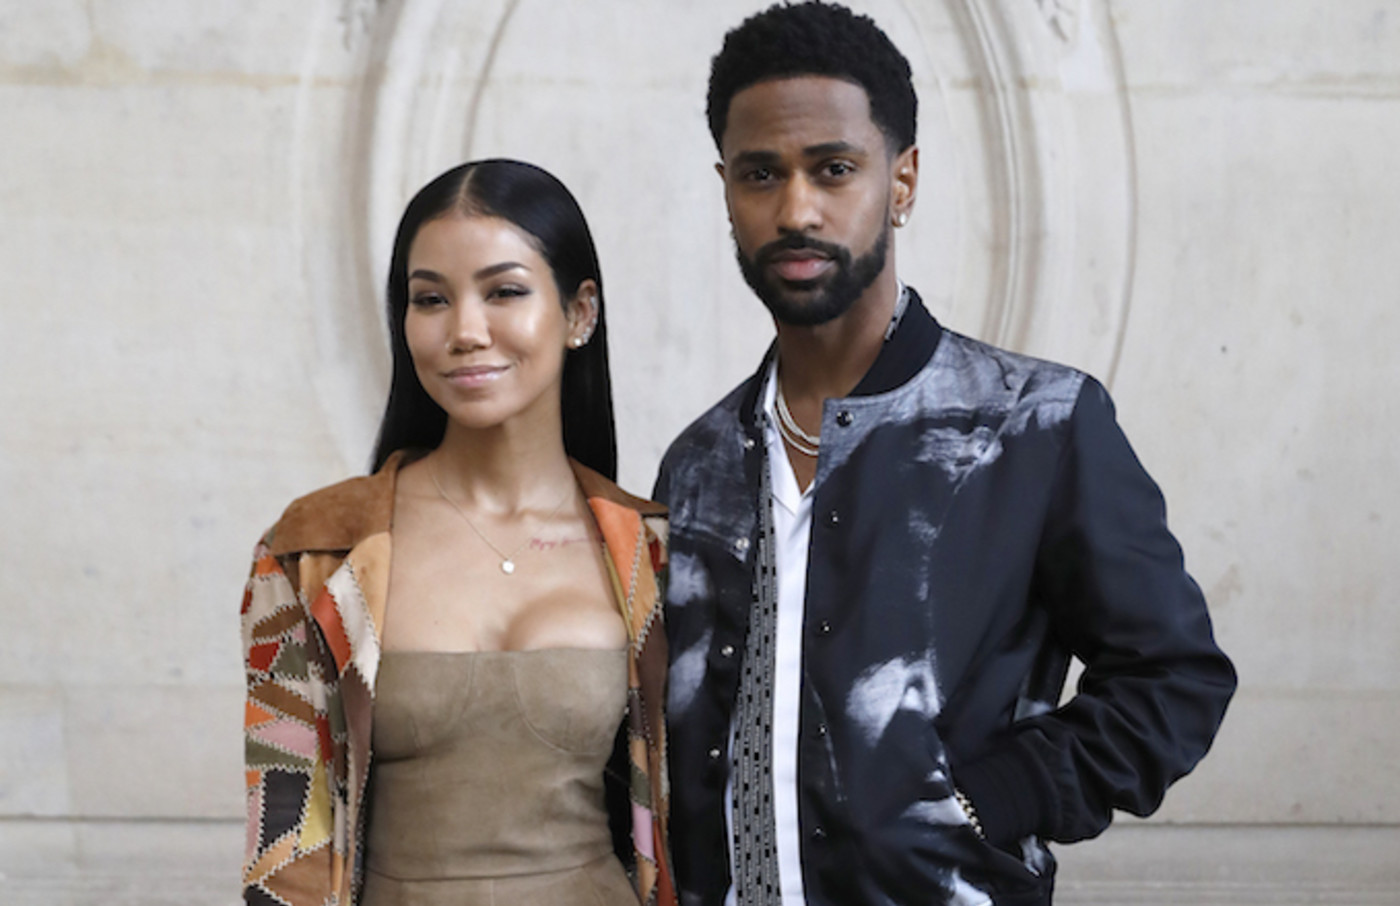 Jhene Aiko and Big Sean poses for a photocall prior to the Christian Dior's fashion show